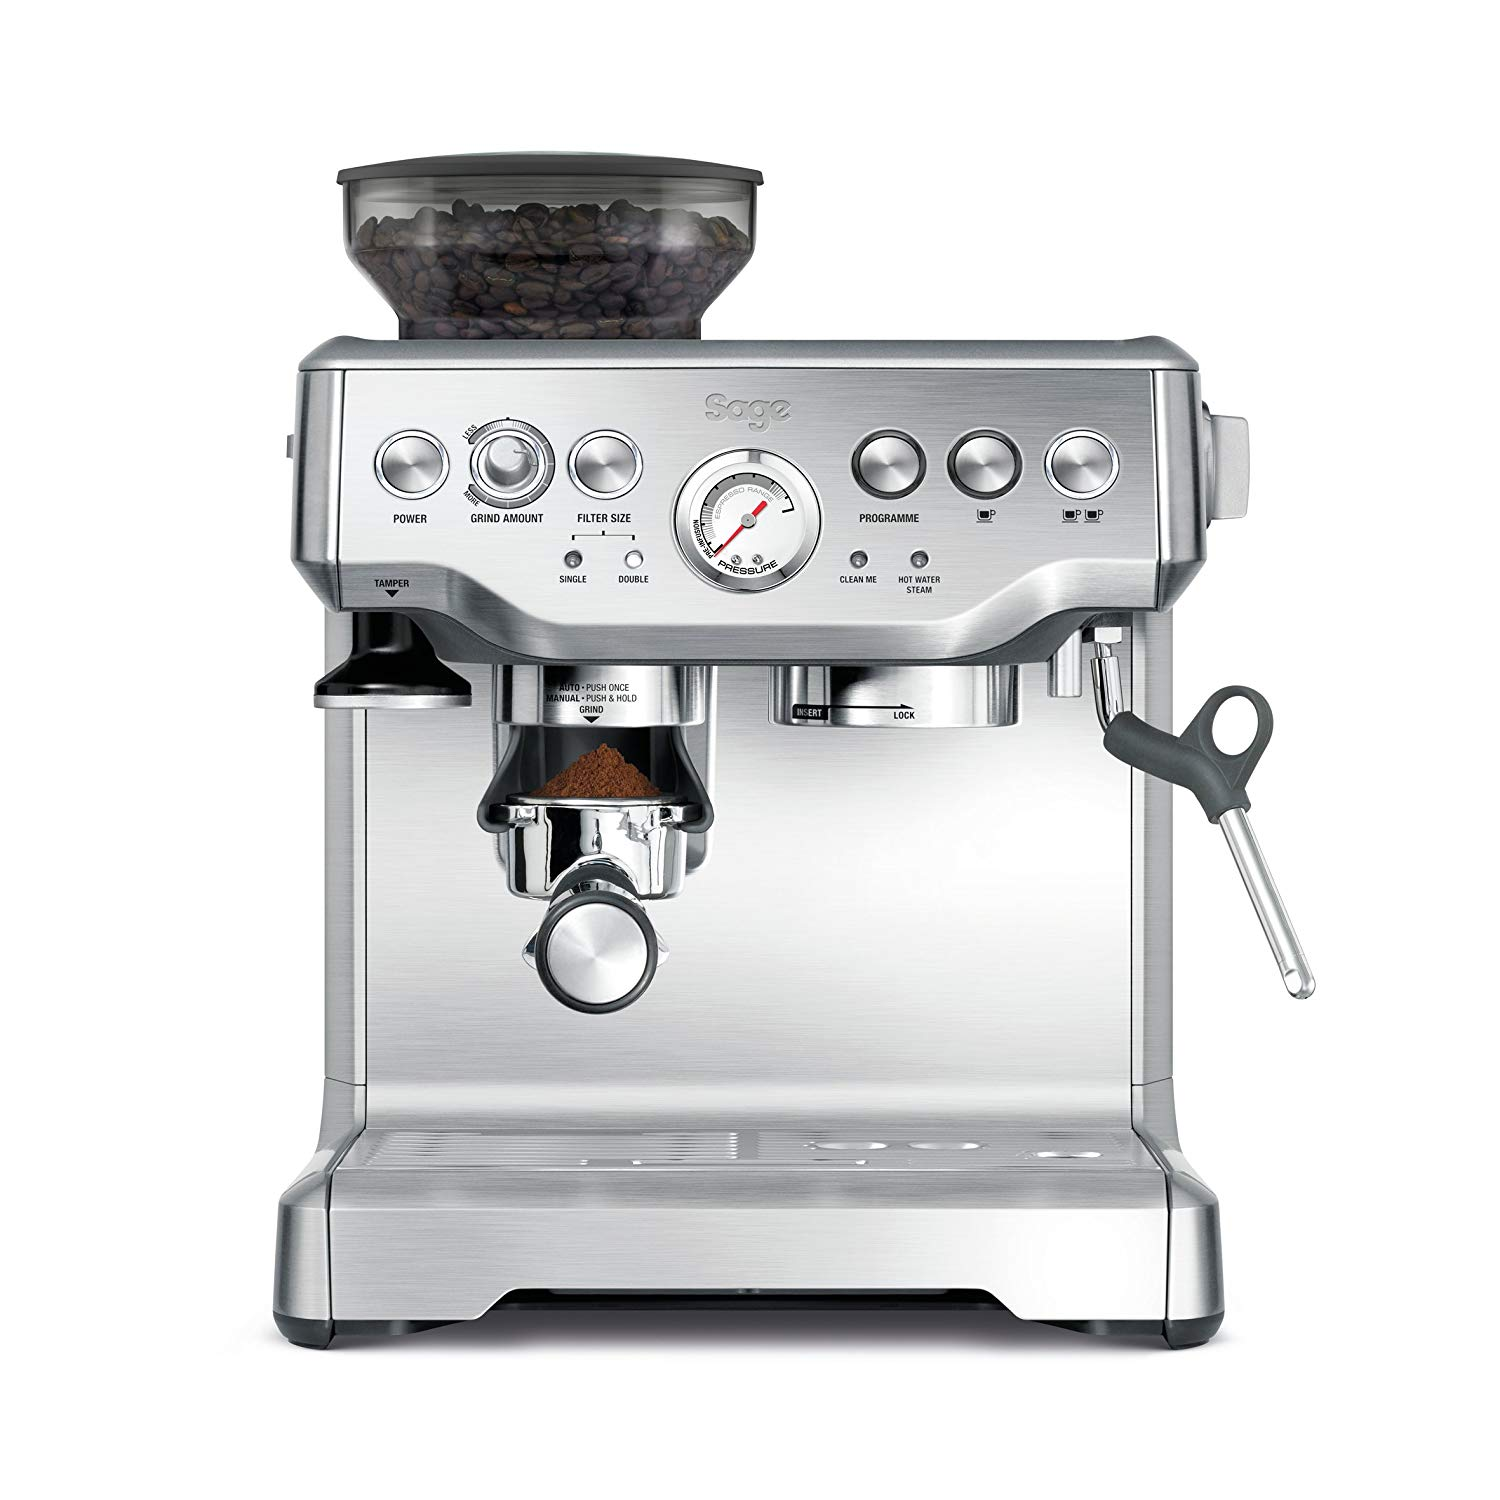 Image of the Barista Express coffee machine from Sage